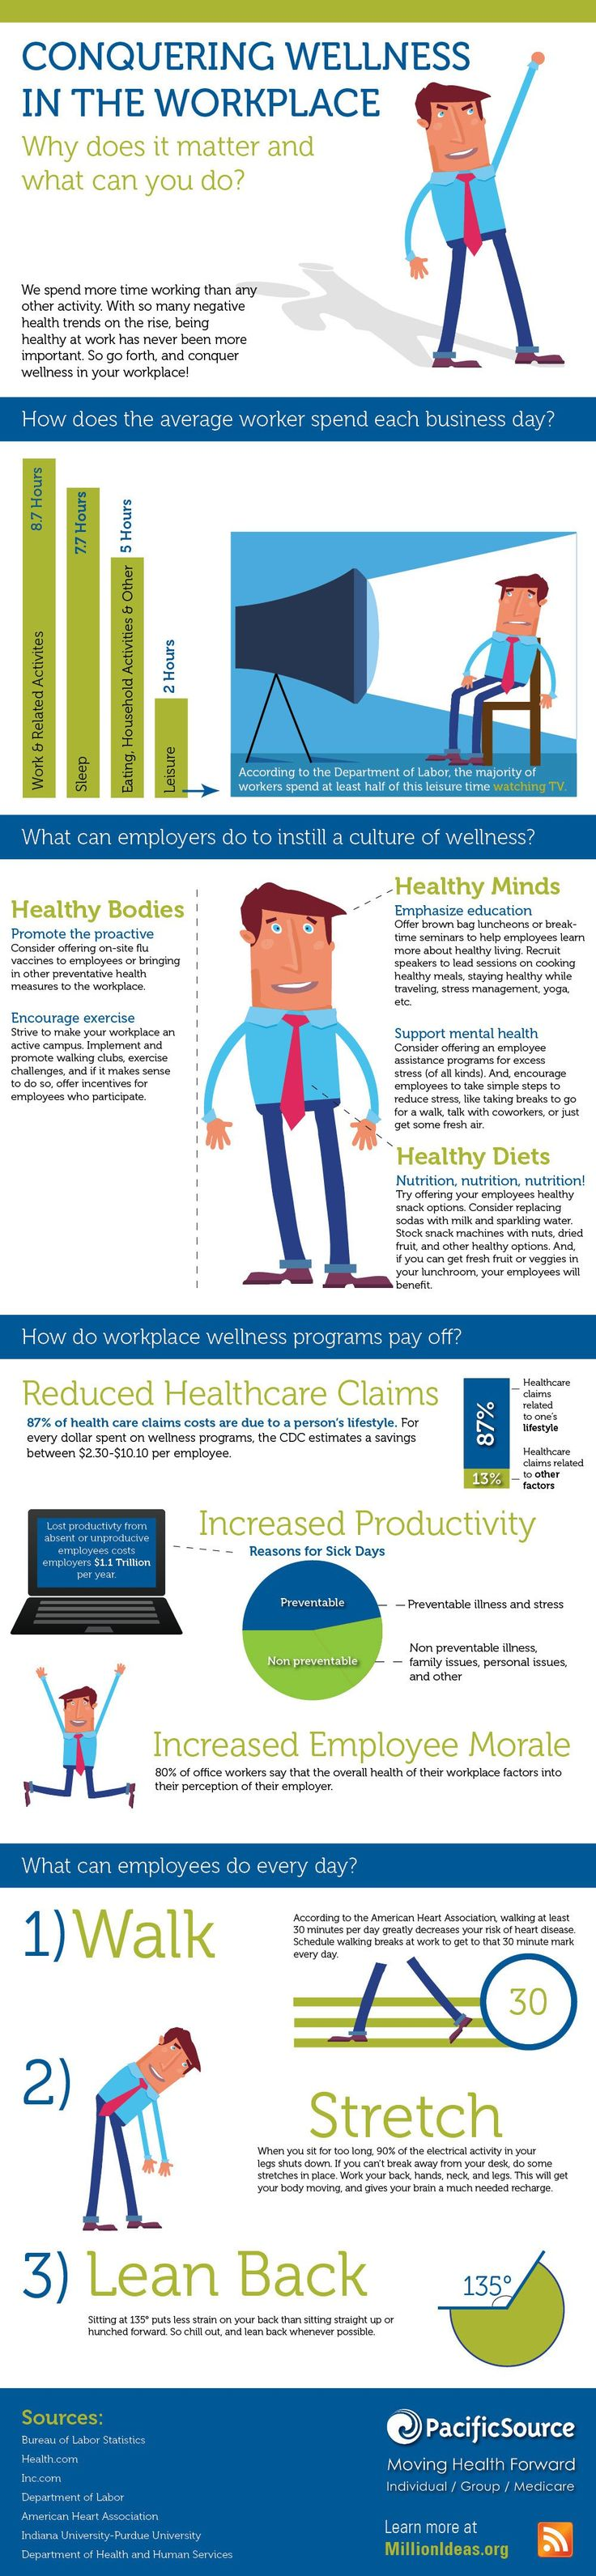 health and wellness in the workplace A company that offers wellness initiatives in the workplace can save in healthcare costs, as well as encourage productivity from employees.